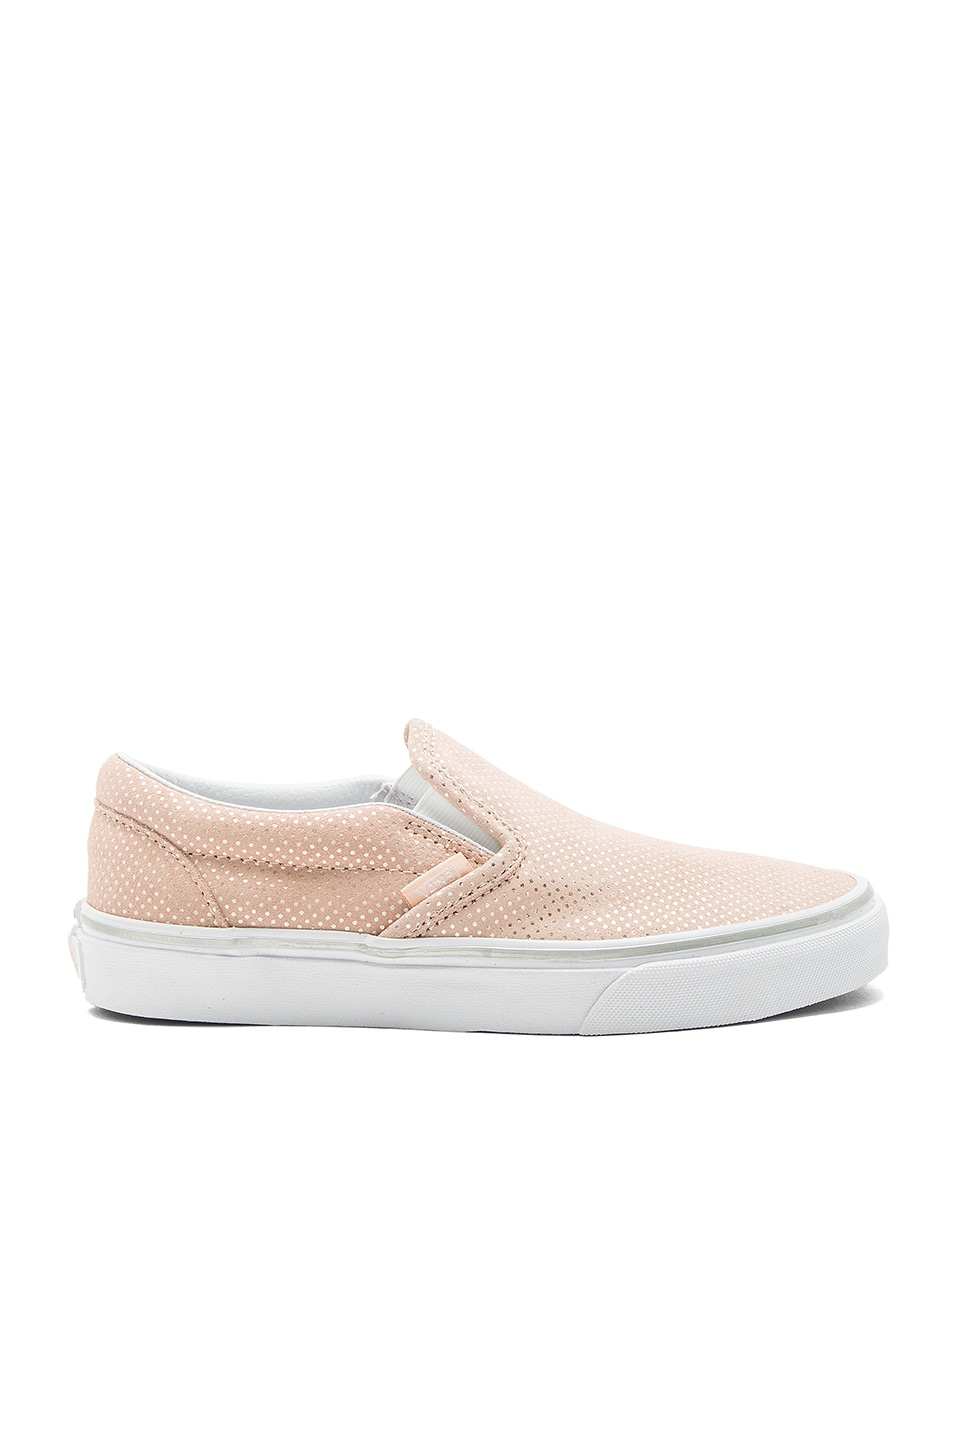 Vans Classic Slip-On Sneaker in Rose & Spanish Vanilla